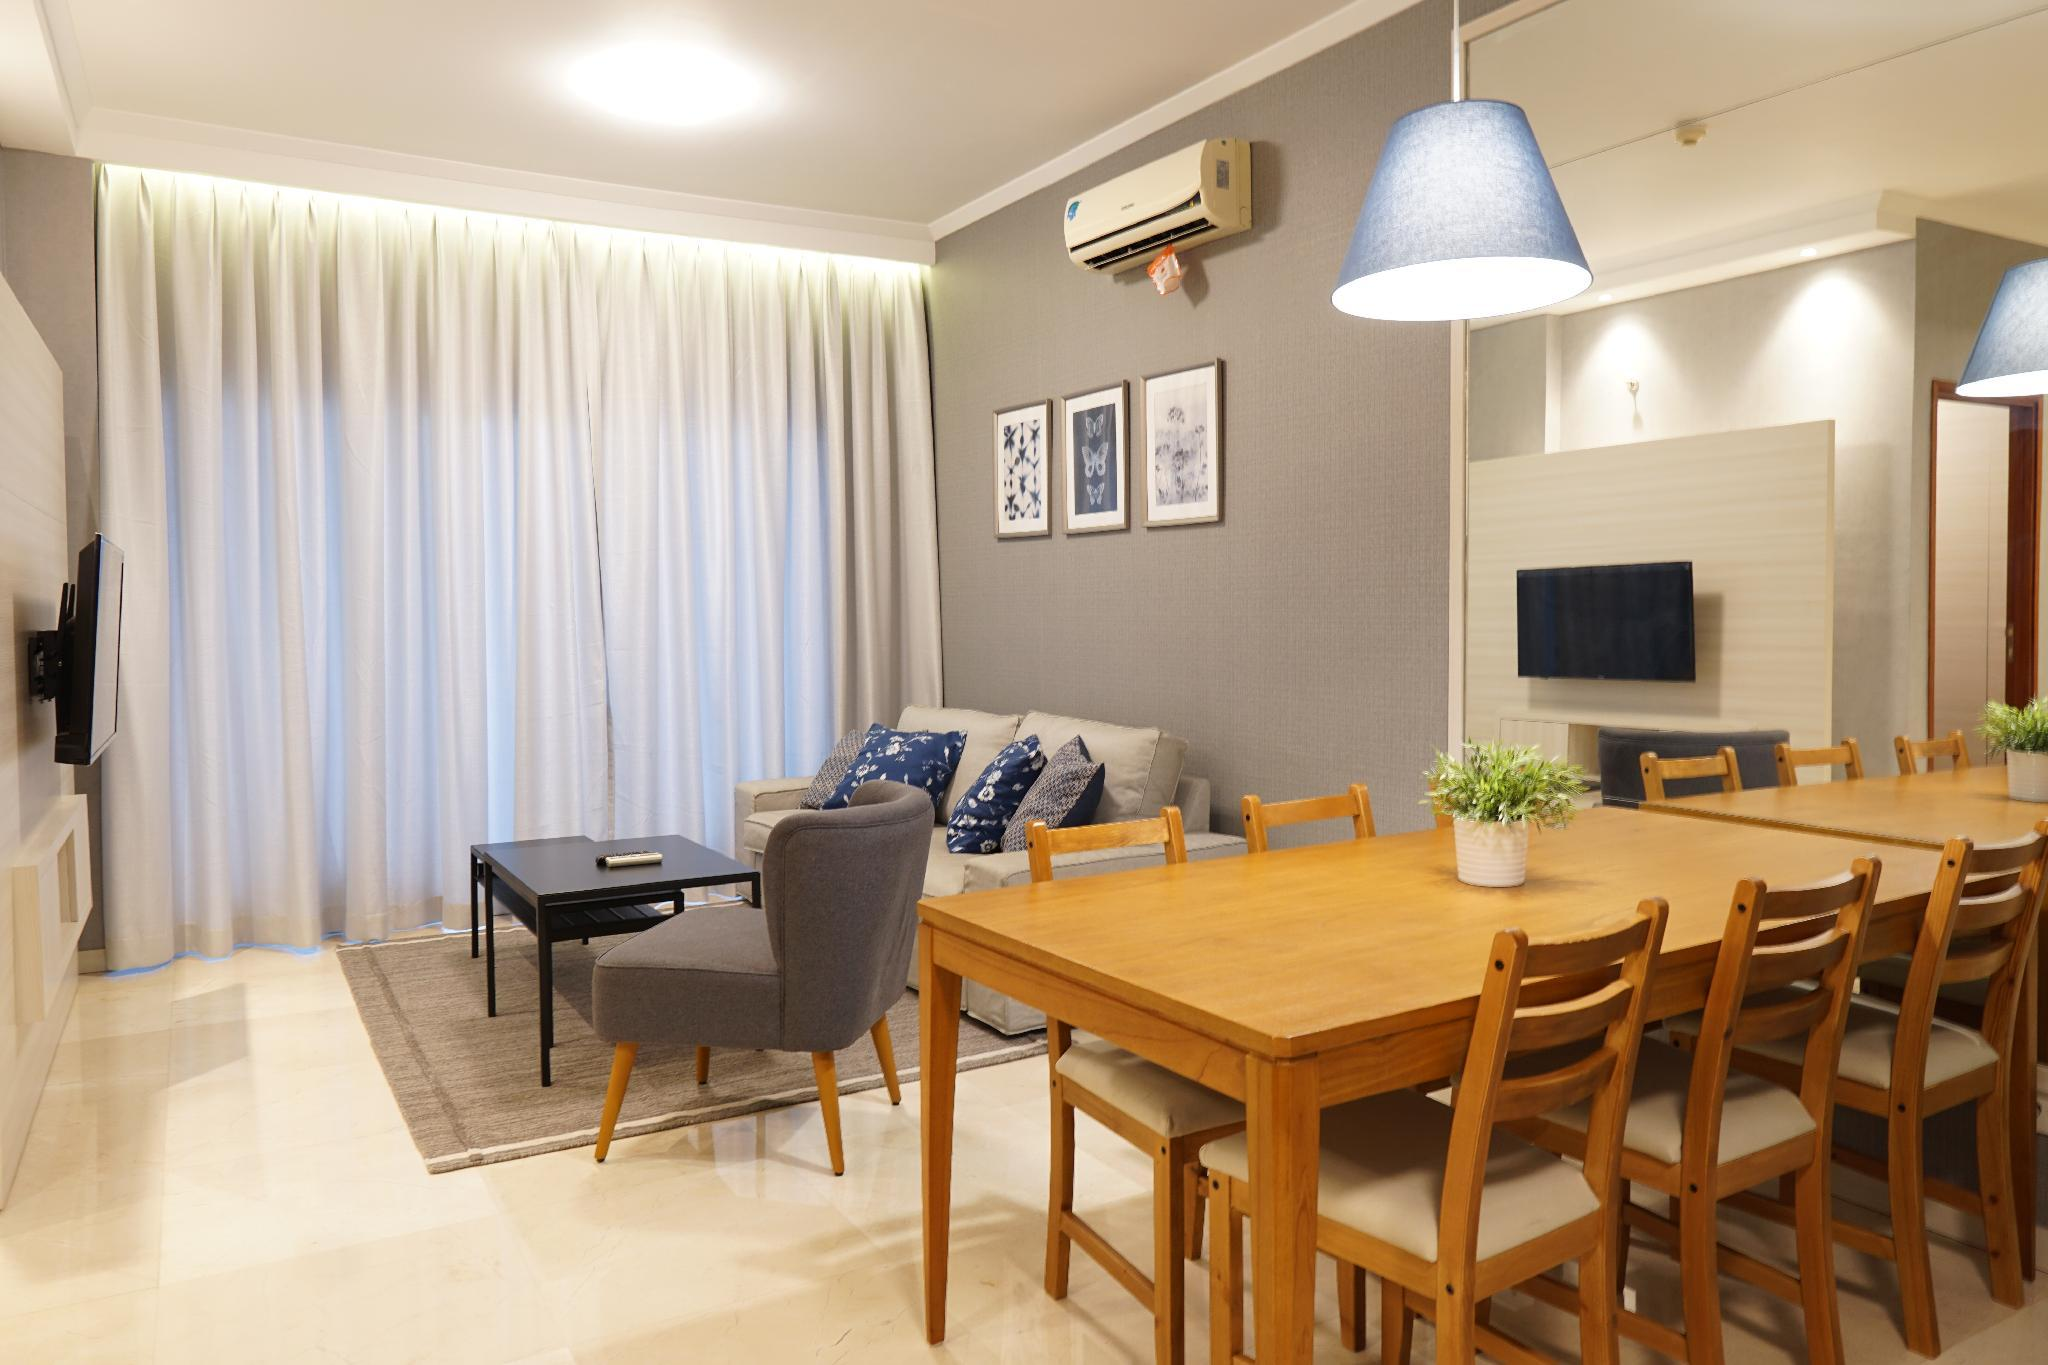 Modern Apartment Poins South Jakarta 3 Min To Mrt Jakarta Hotels Lets Go On A Trip By Tabi Coco Com Hotel Reservations For Hotels In Indonesia